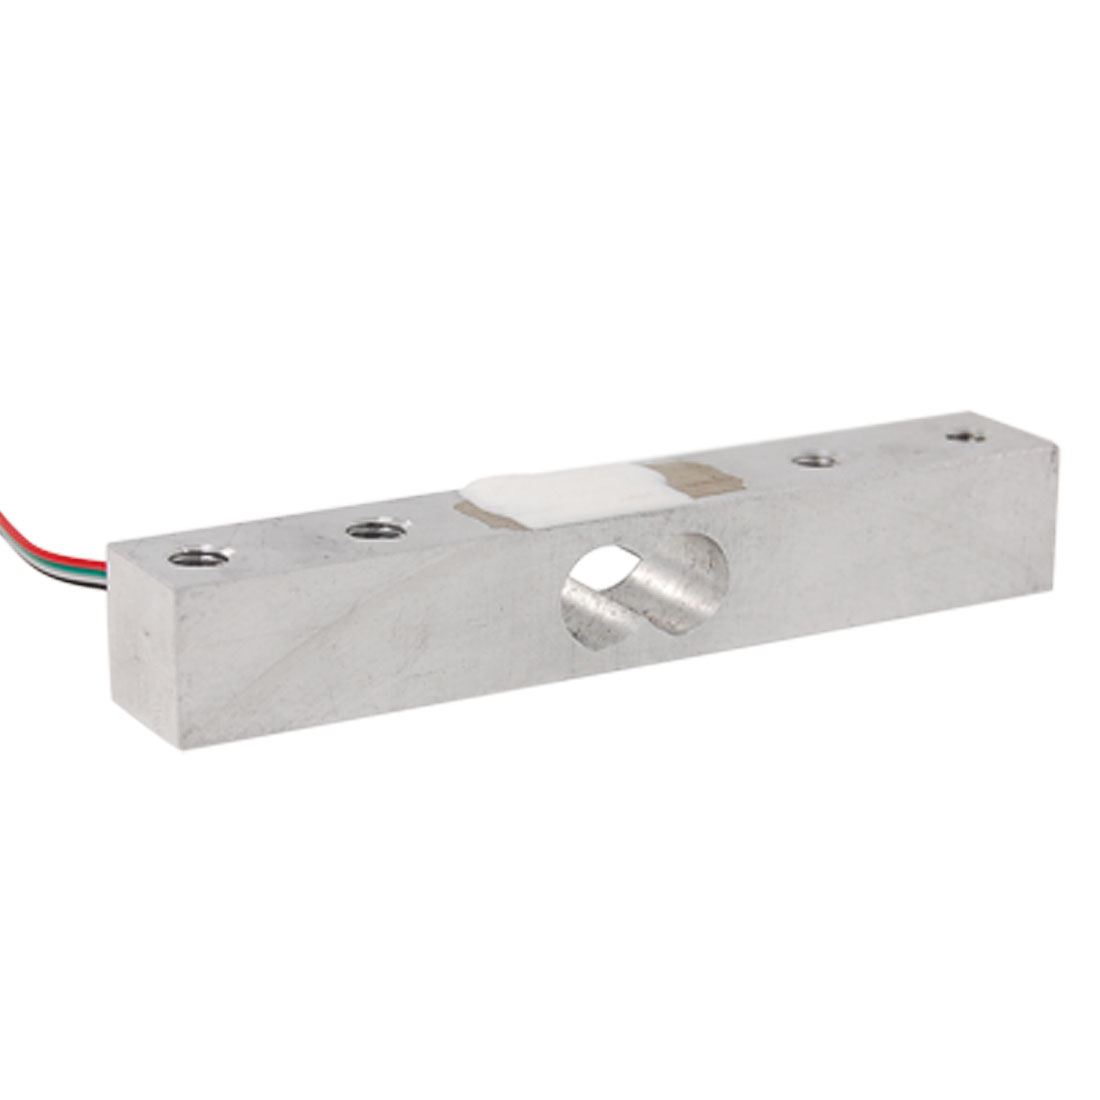 Replacement Electronic Scale 0-20Kg Range Weighing Sensor Load Cell